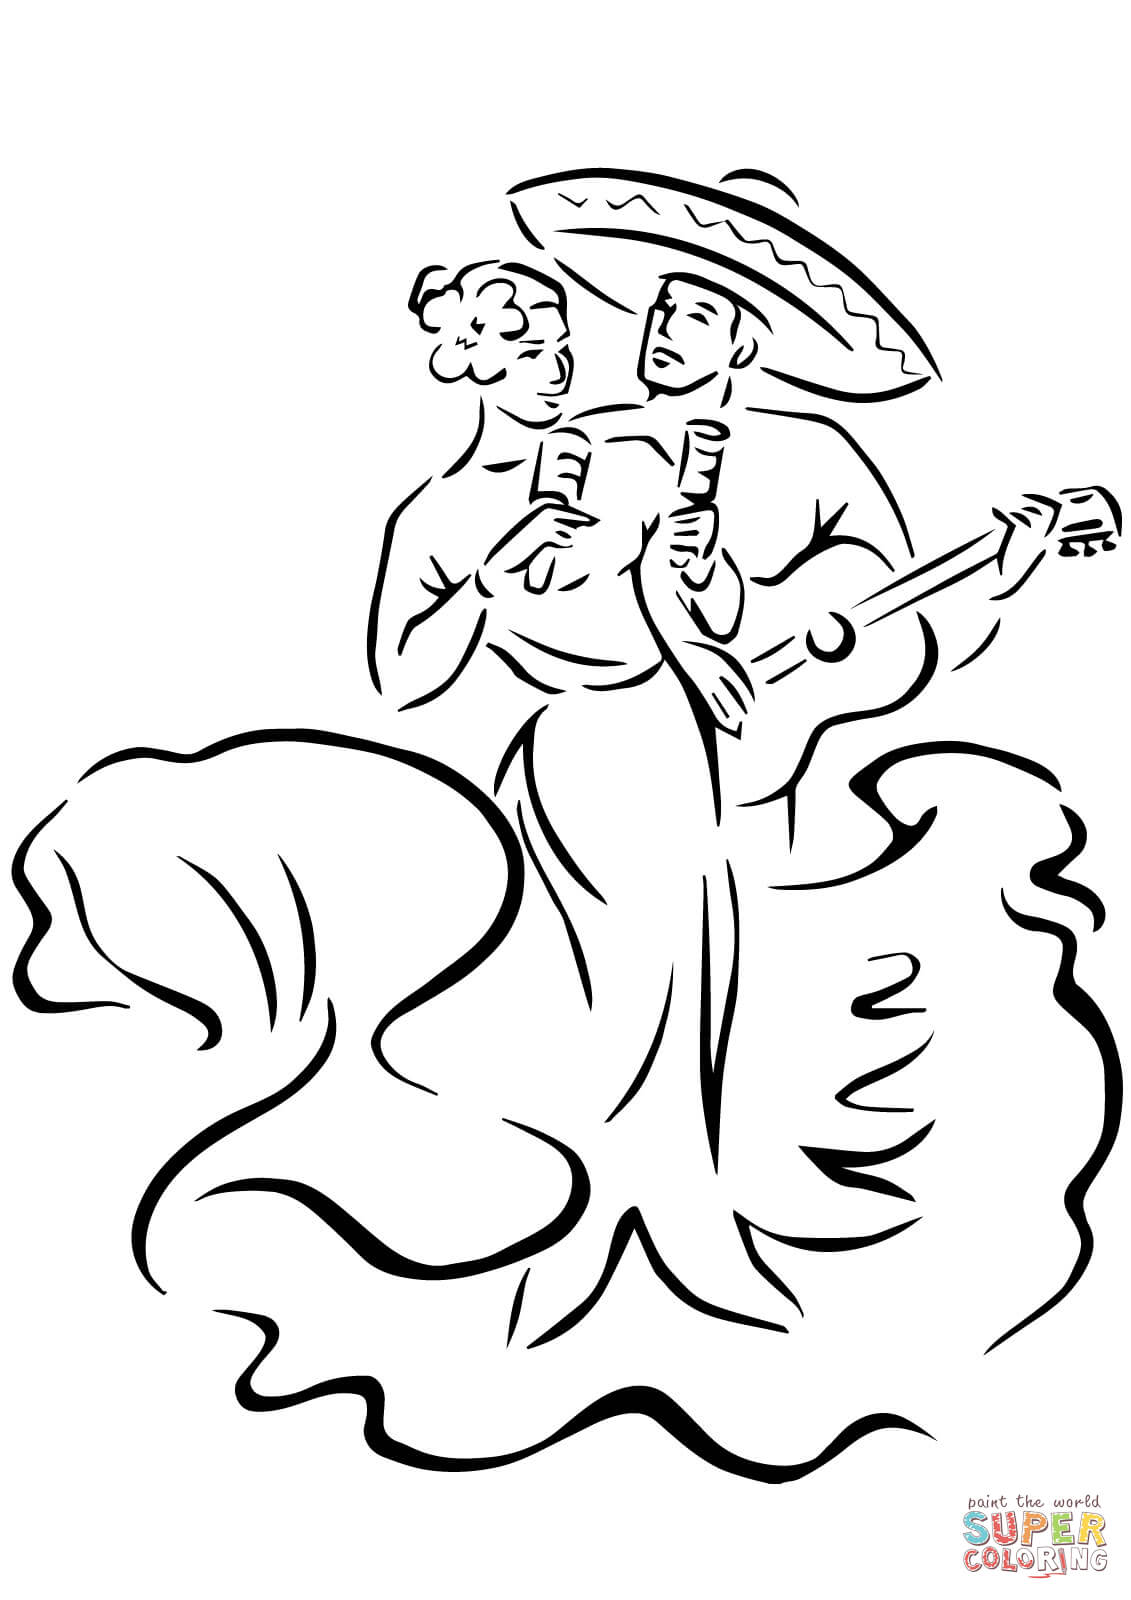 Cinco De Mayo Traditional Dances Coloring Page